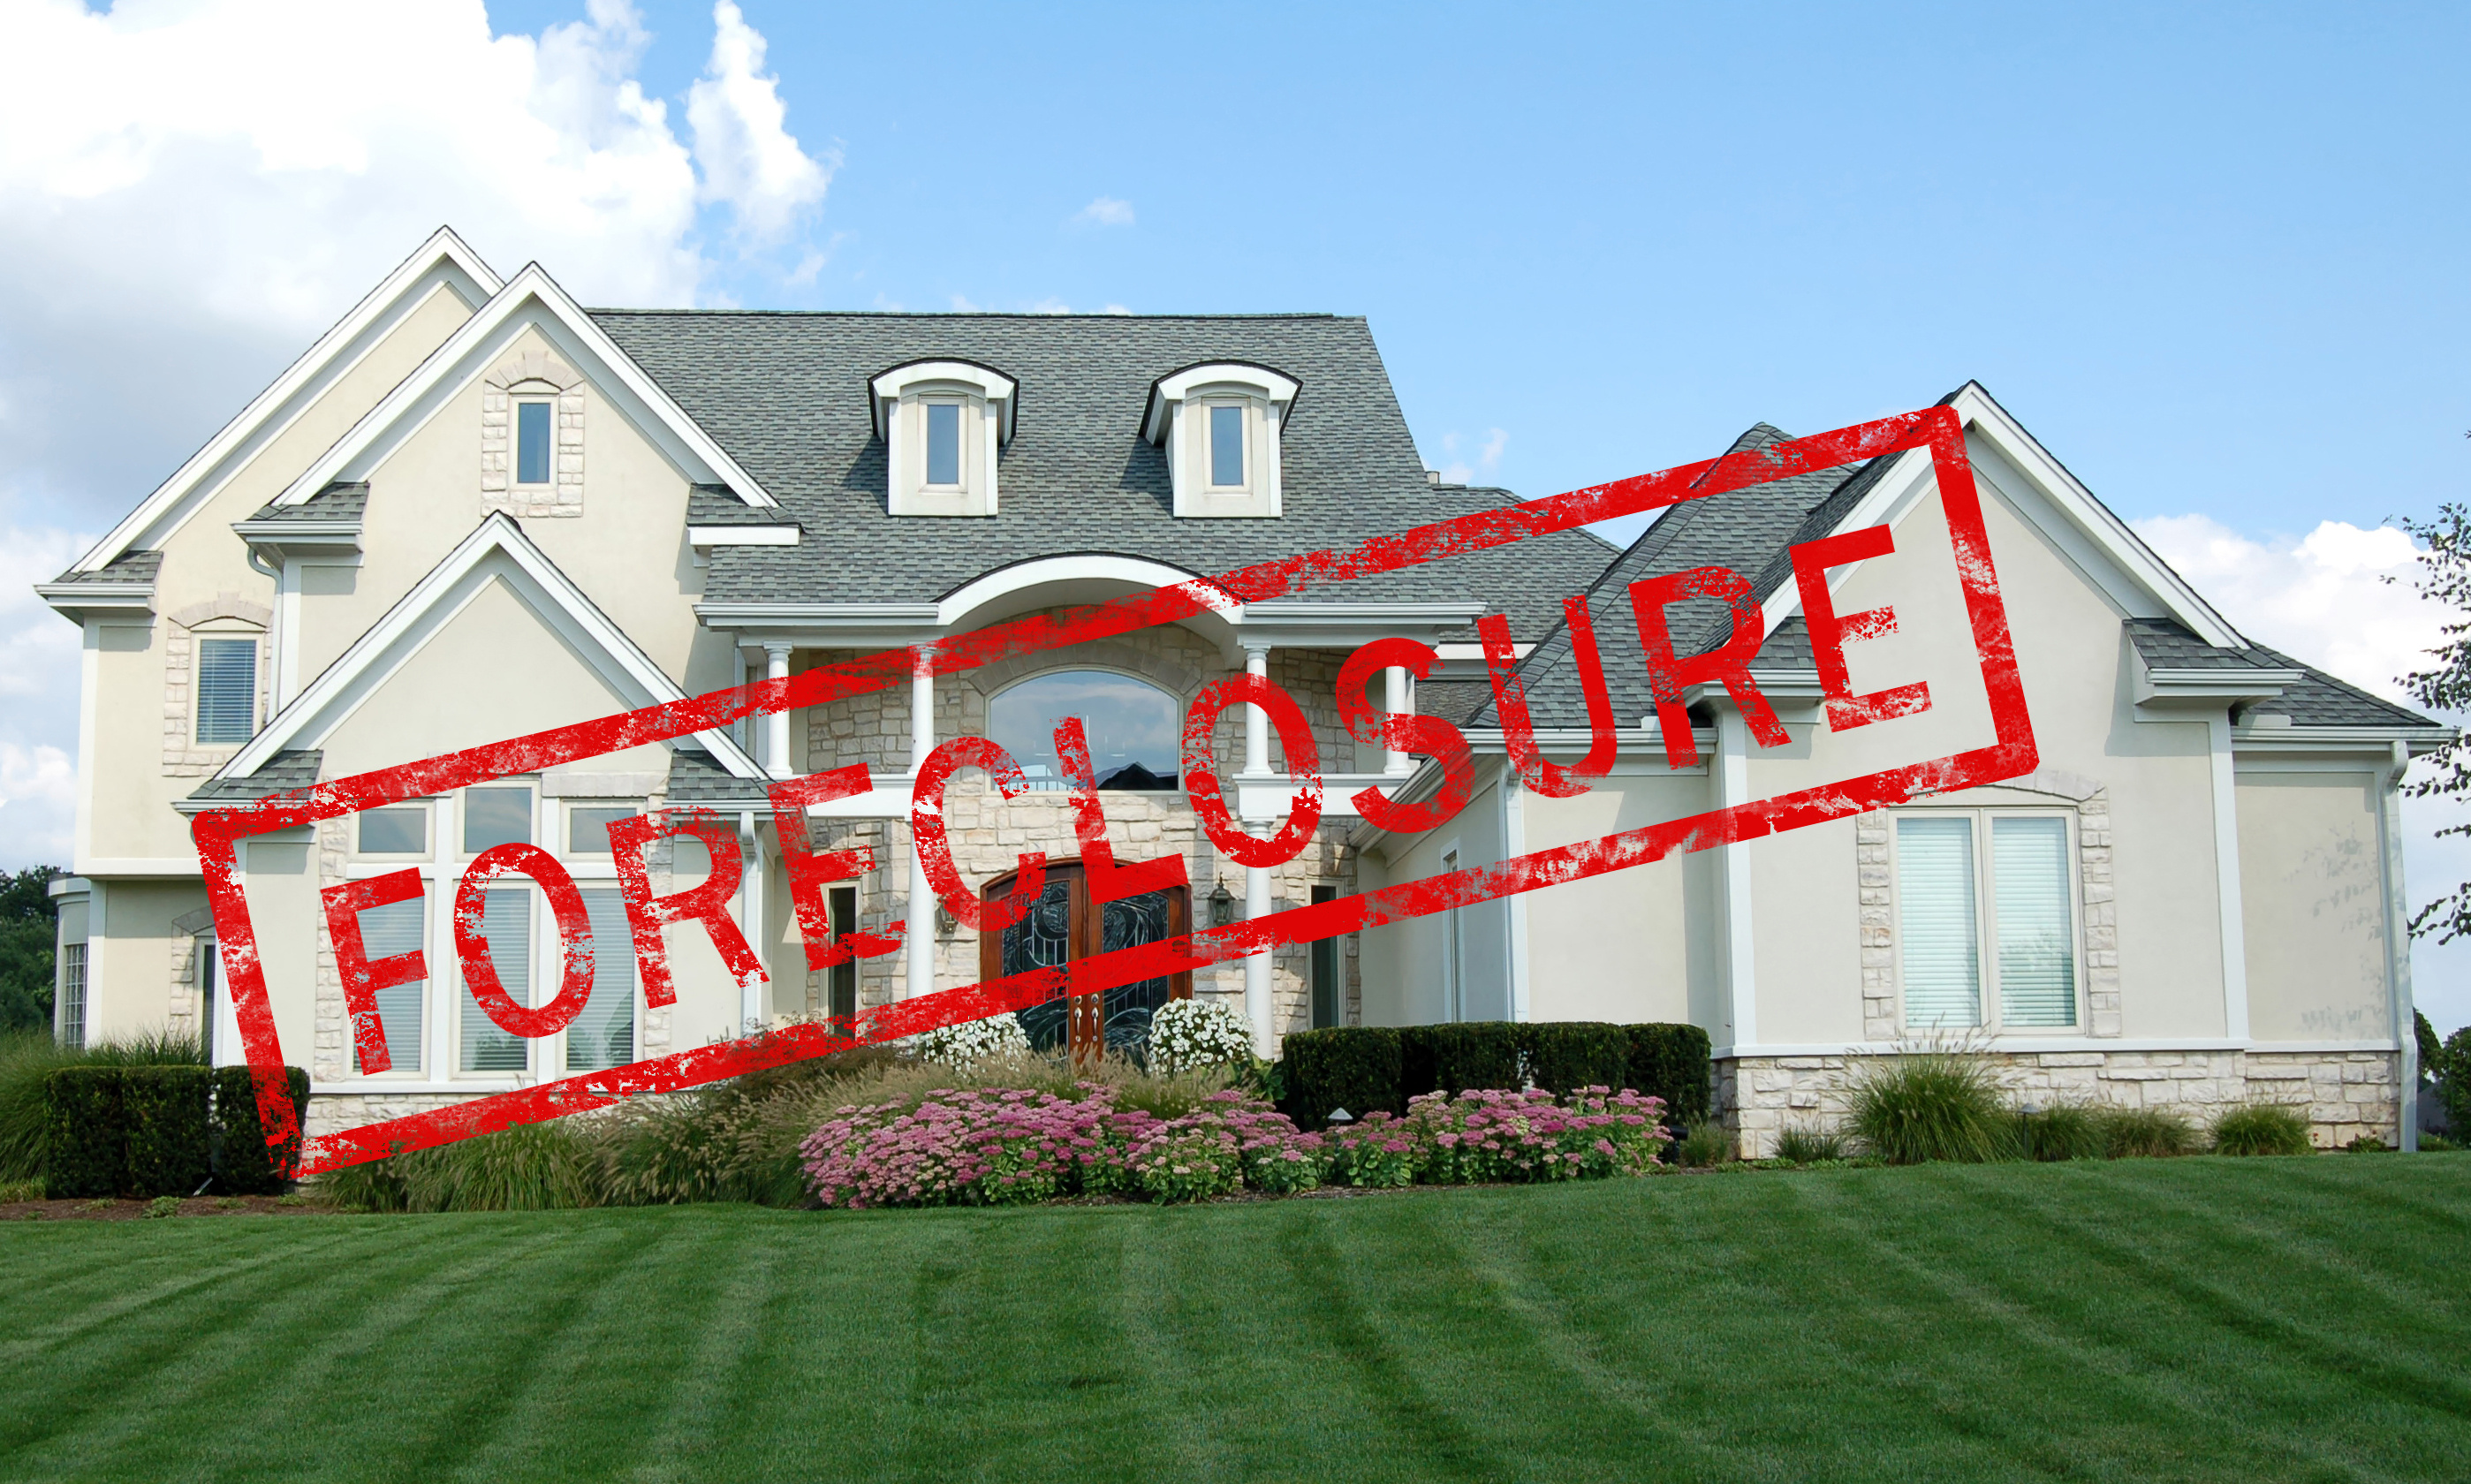 Call B & J APPRAISALS, INC. when you need valuations regarding Westchester foreclosures